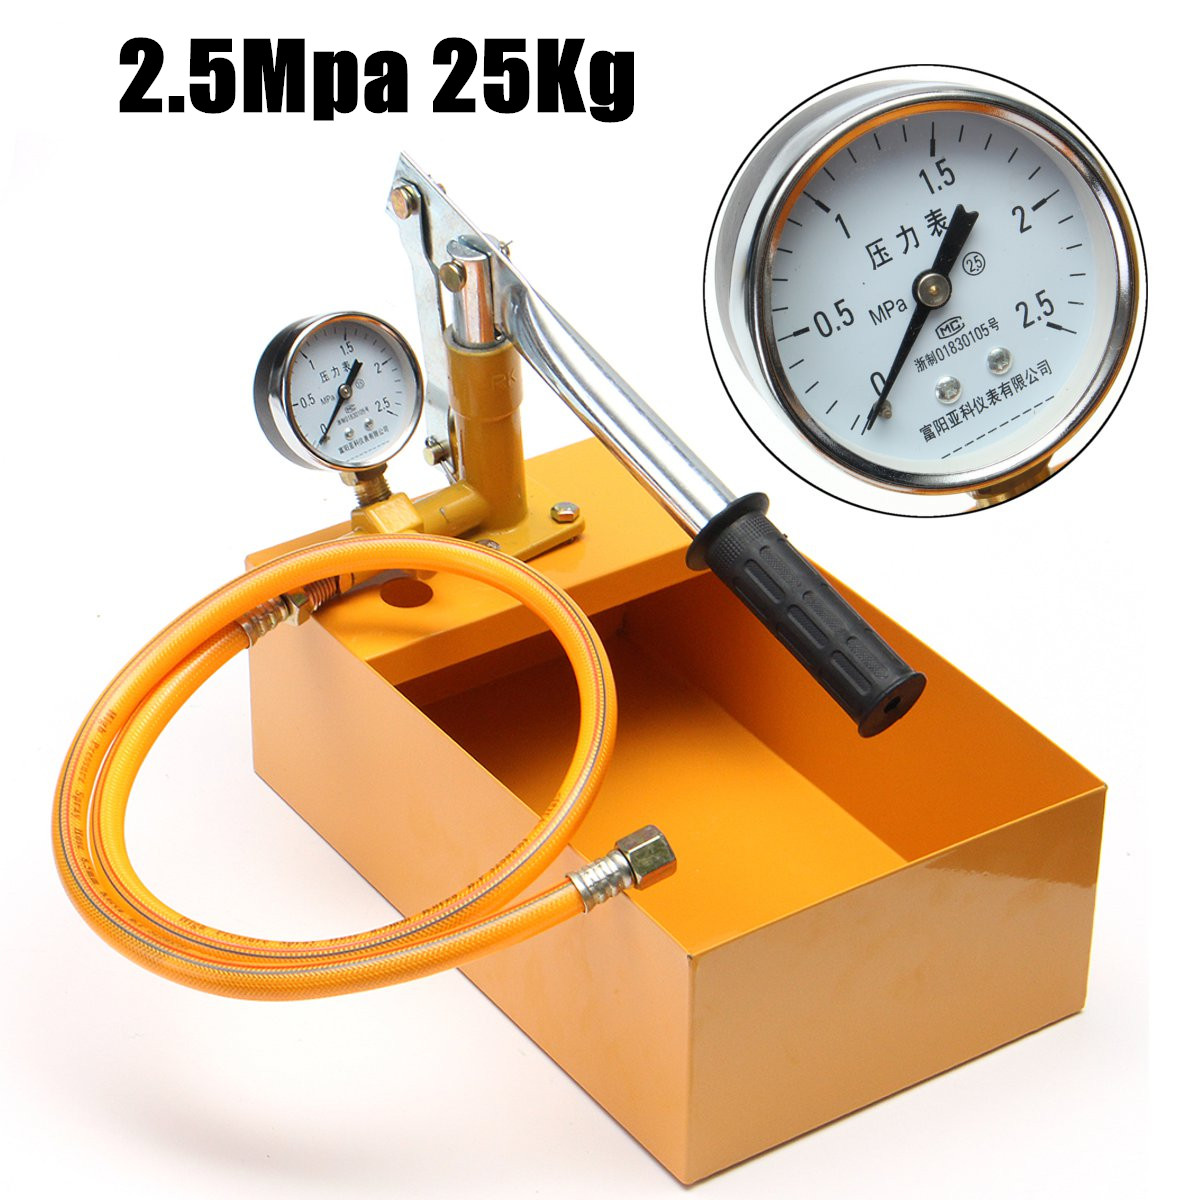 ZEAST 2.5Mpa 25kg Manual Water Pipe Pressure Test Pump Measuring Tool Suitable for Water Hydraulic Oil Pressure Testing Pump free shipping hand tool manual 4 mpa 40kg pressure test pump water pressure testing hydraulic pump 42mm pipe cutter free for you